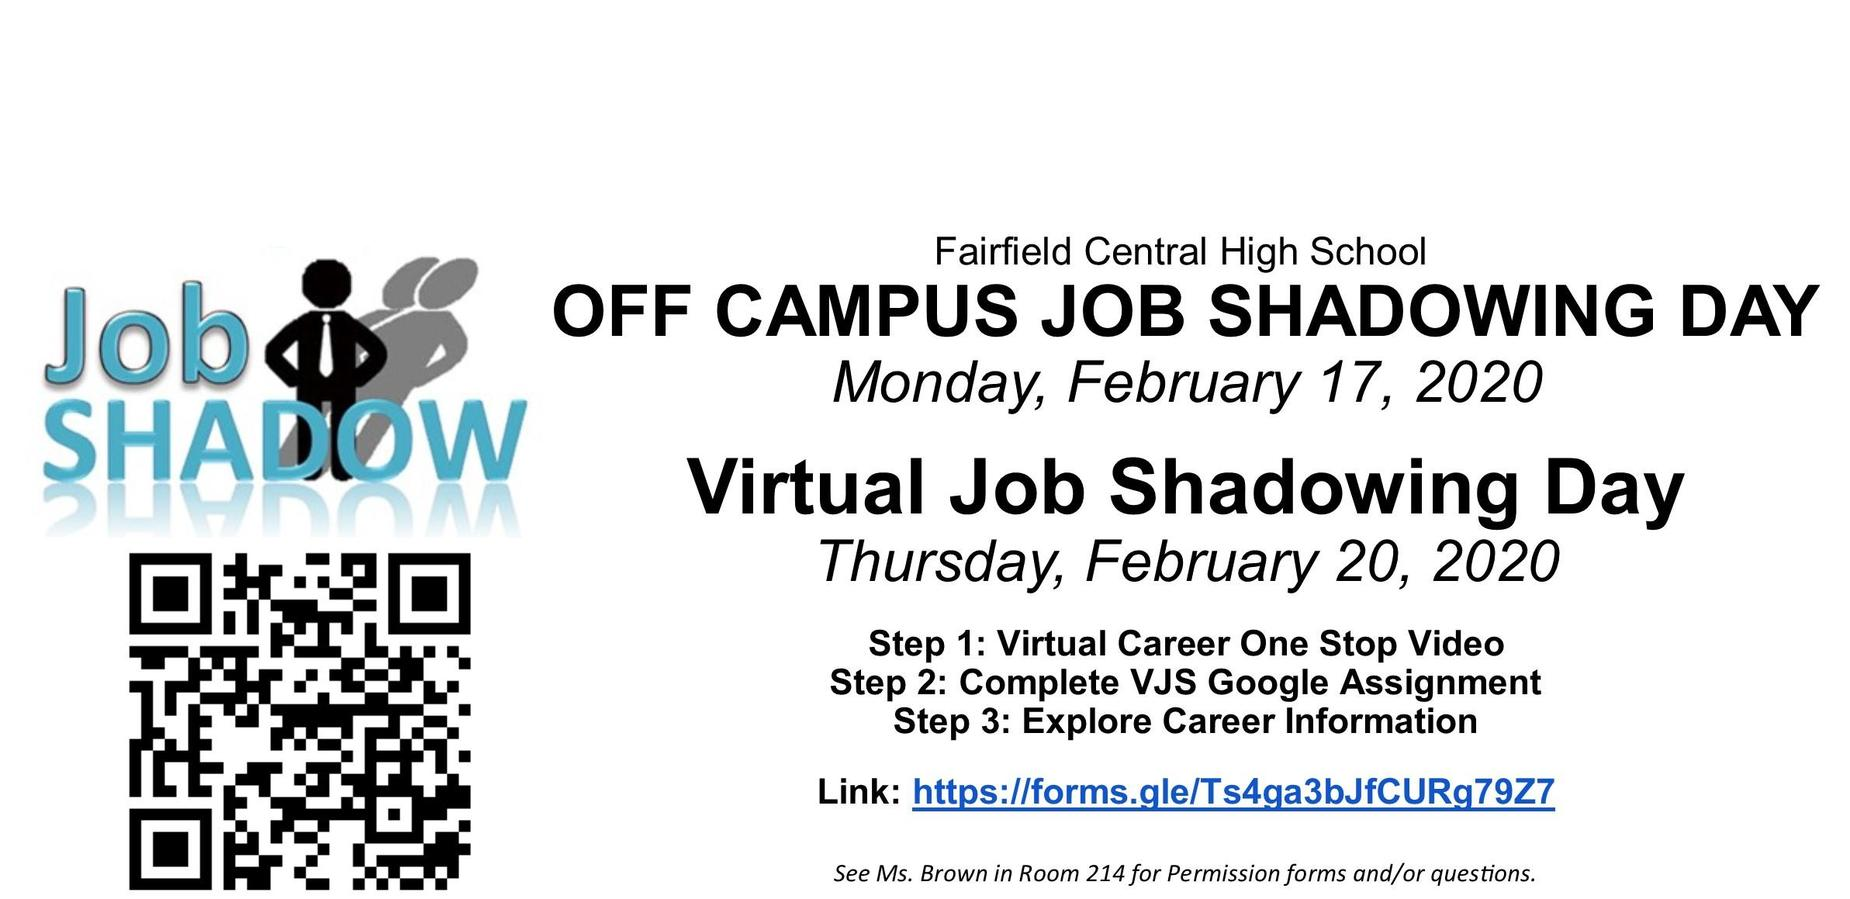 Fairfield Central High School OFF CAMPUS JOB SHADOWING DAY Monday, February 17, 2020  Virtual Job Shadowing Day Thursday, February 20, 2020  Step 1: Virtual Career One Stop Video Step 2: Complete VJS Google Assignment Step 3: Explore Career Information  Link: https://forms.gle/Ts4ga3bJfCURg79Z7 See Ms. Brown in Room 214 for Permission forms and/or questions.